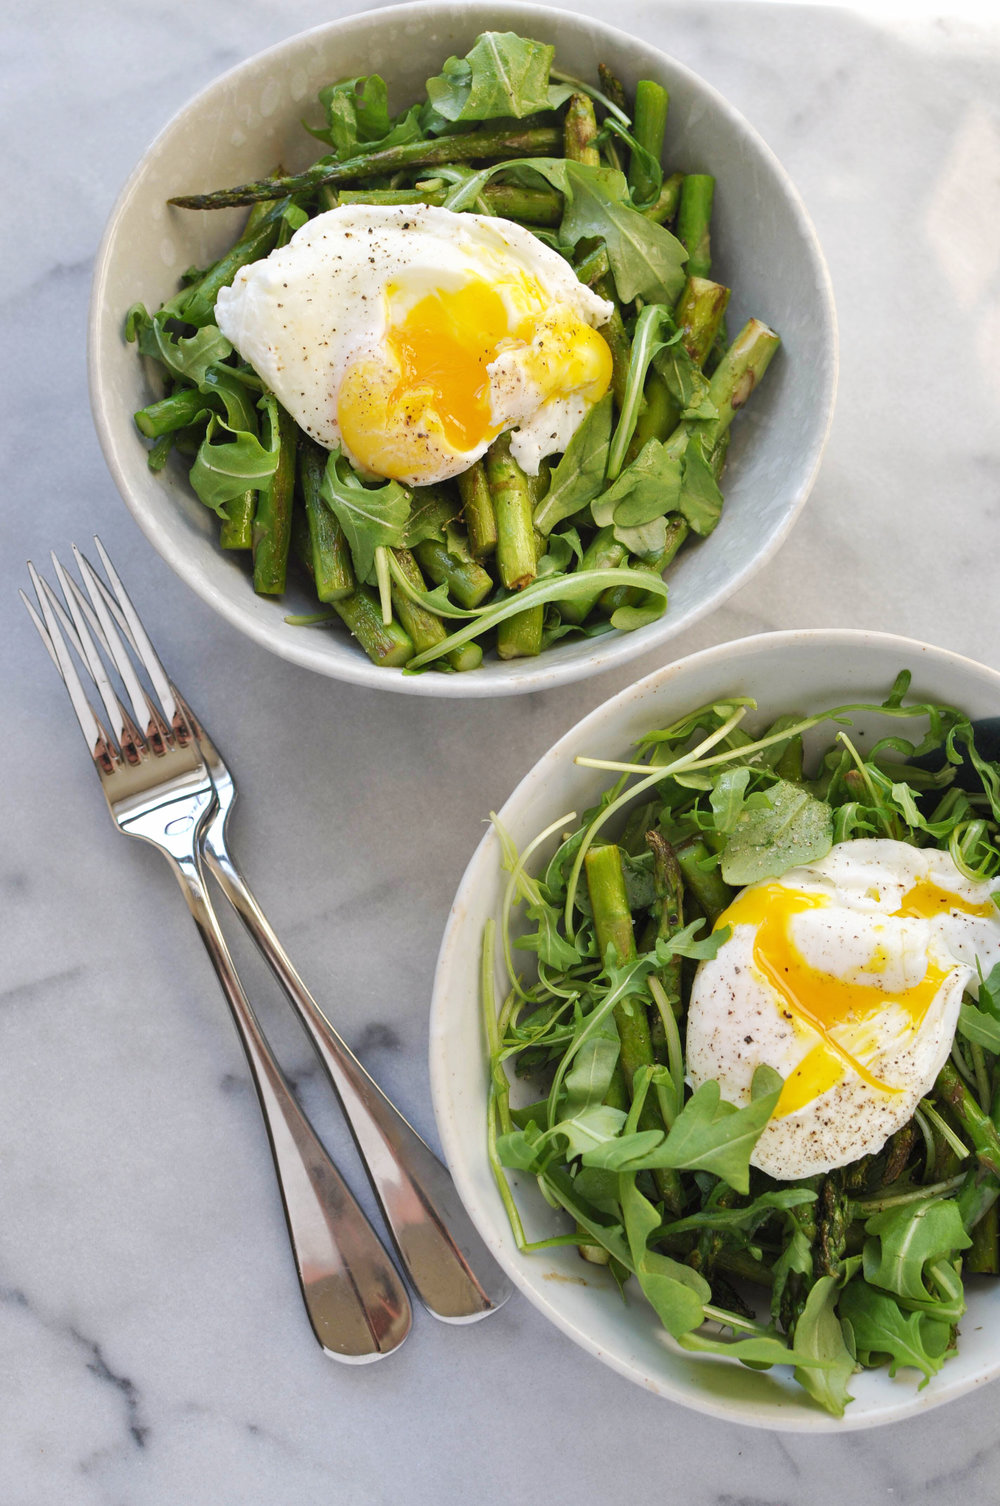 A healthy breakfast of arugula, asparagus, and a poached egg. A perfect, vegetarian meal. | Shiny Happy Bright